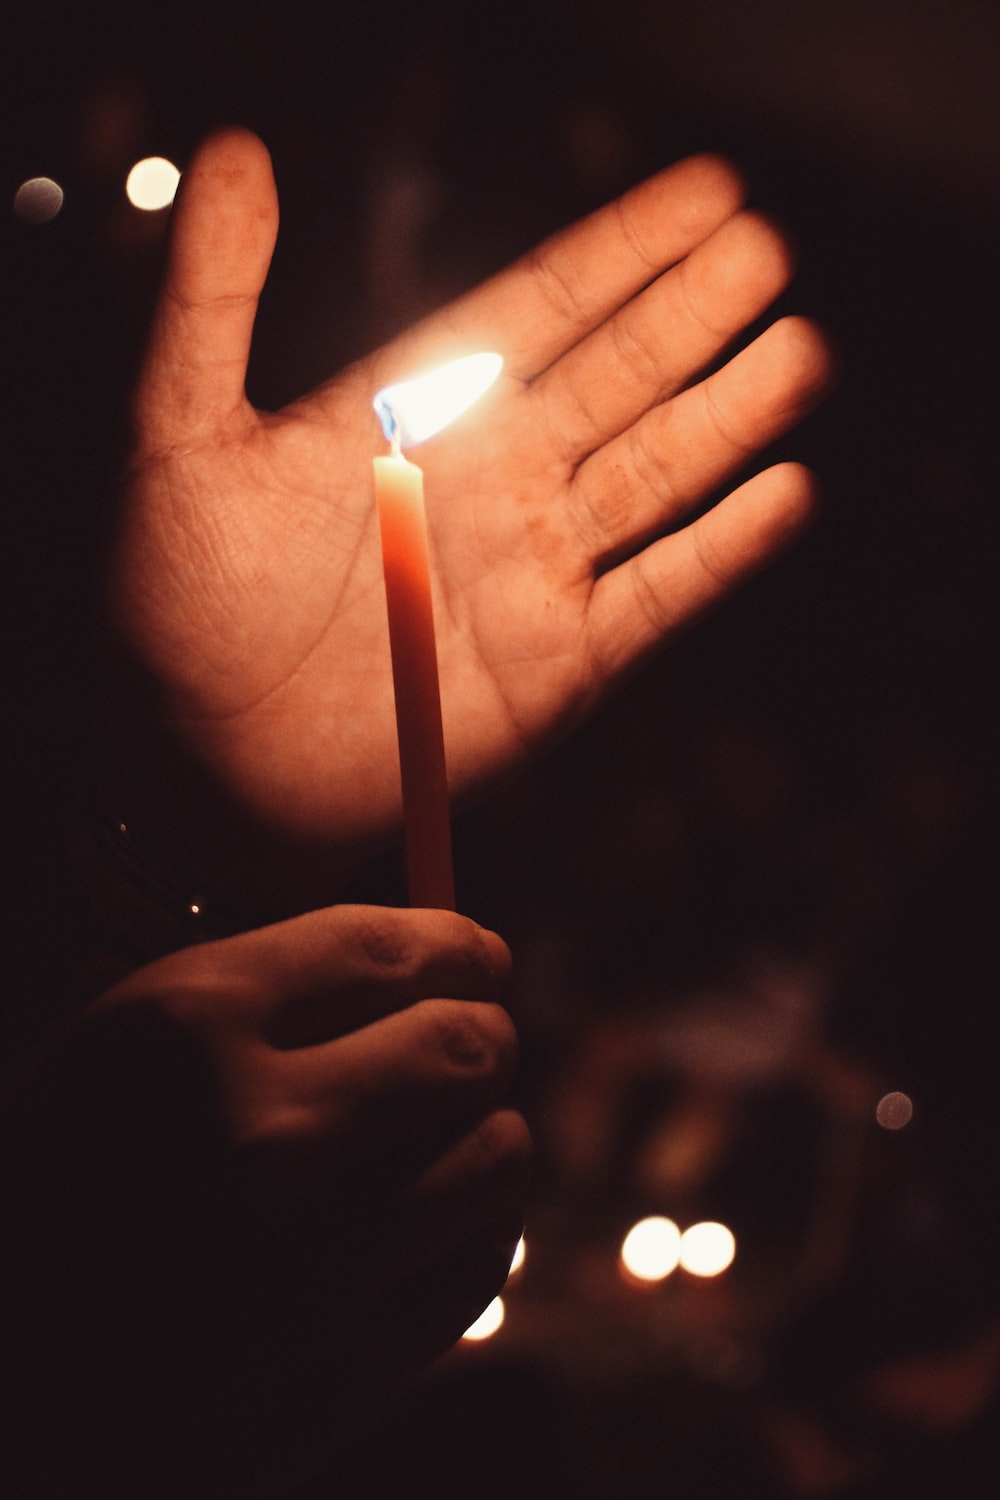 person holding lit candle near palm